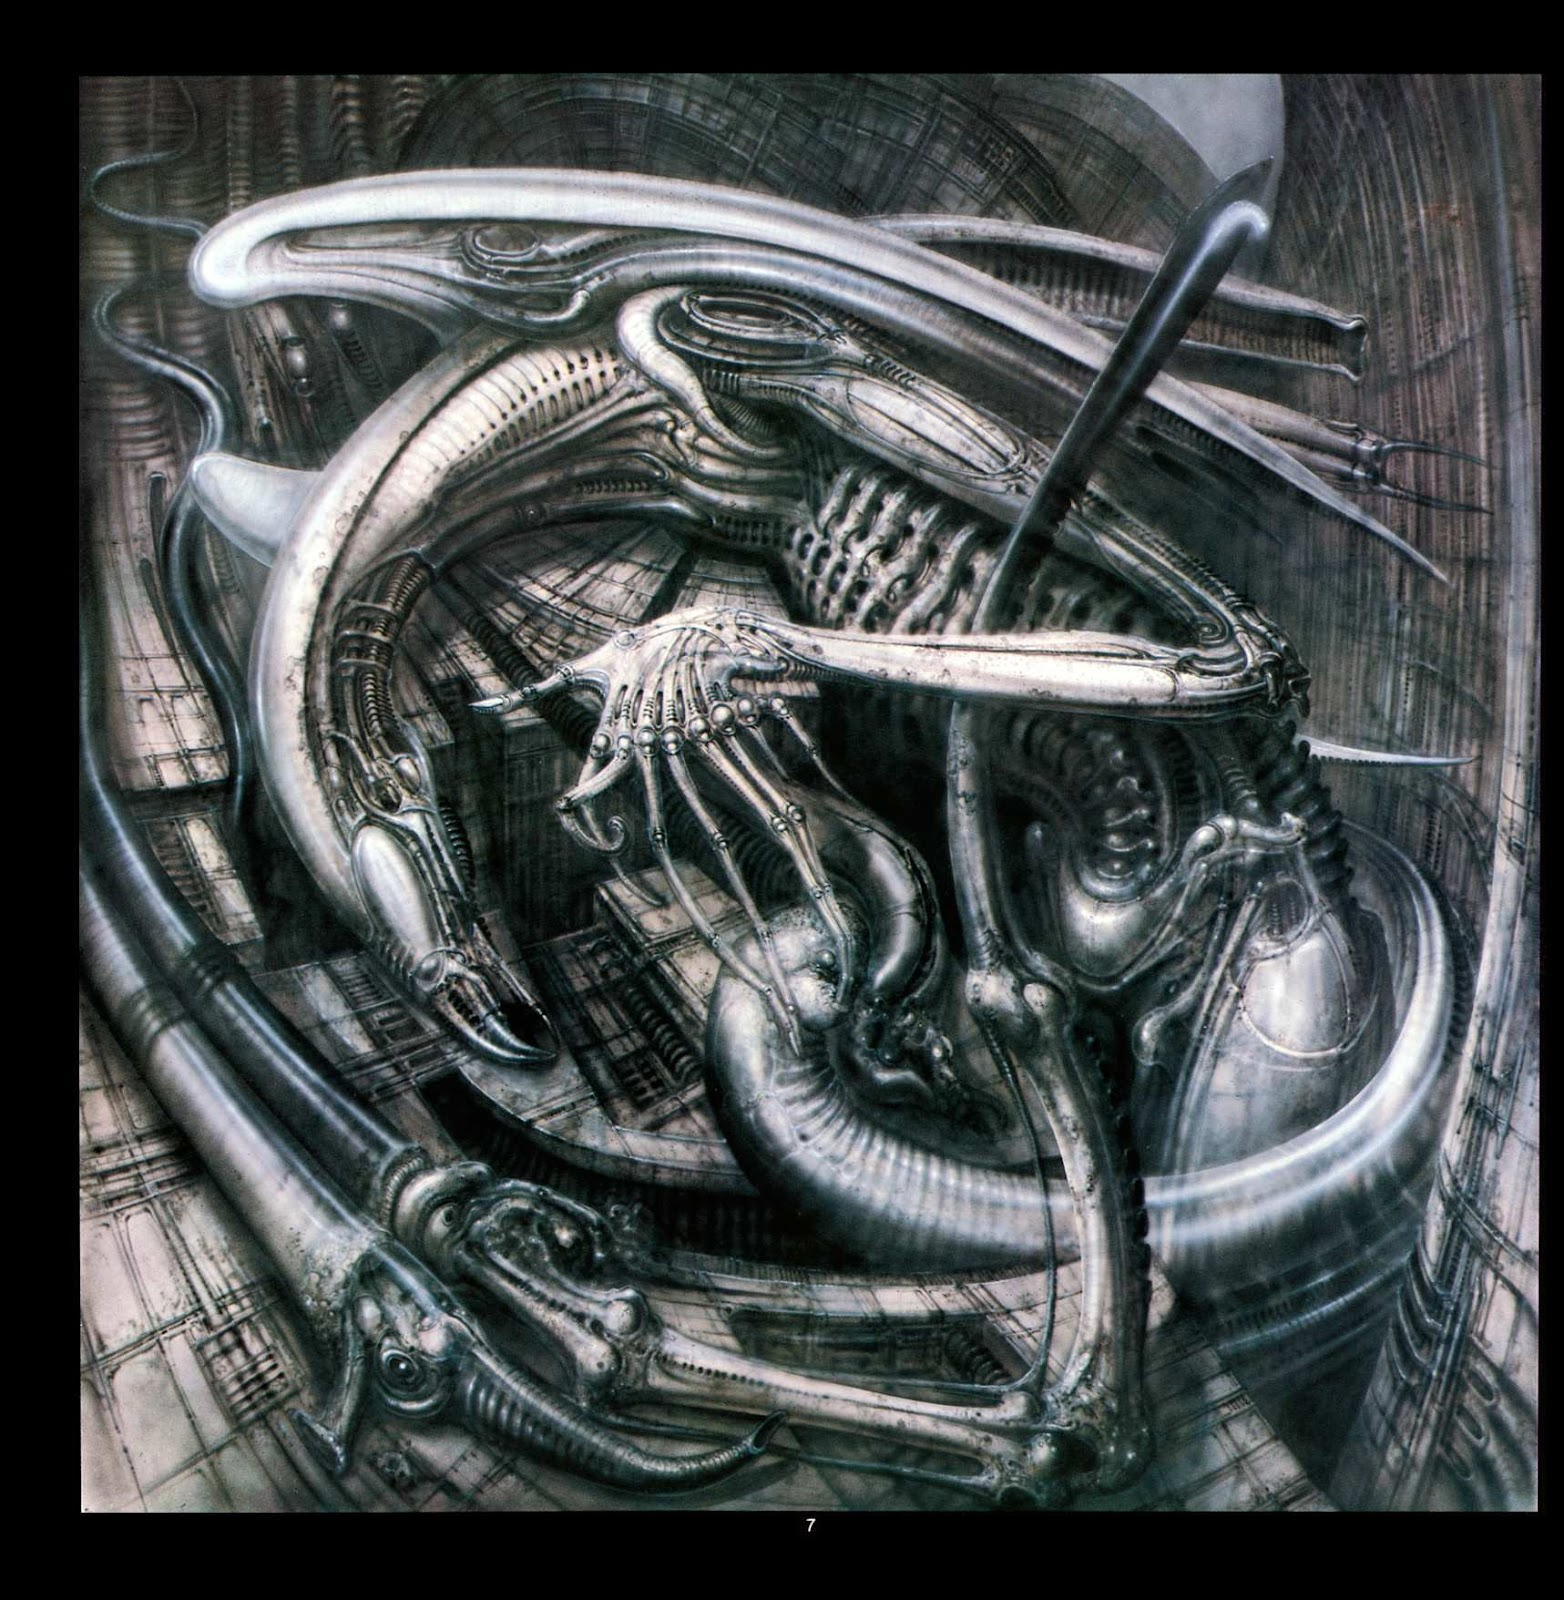 Read online Giger's Alien comic -  Issue # TPB - 9